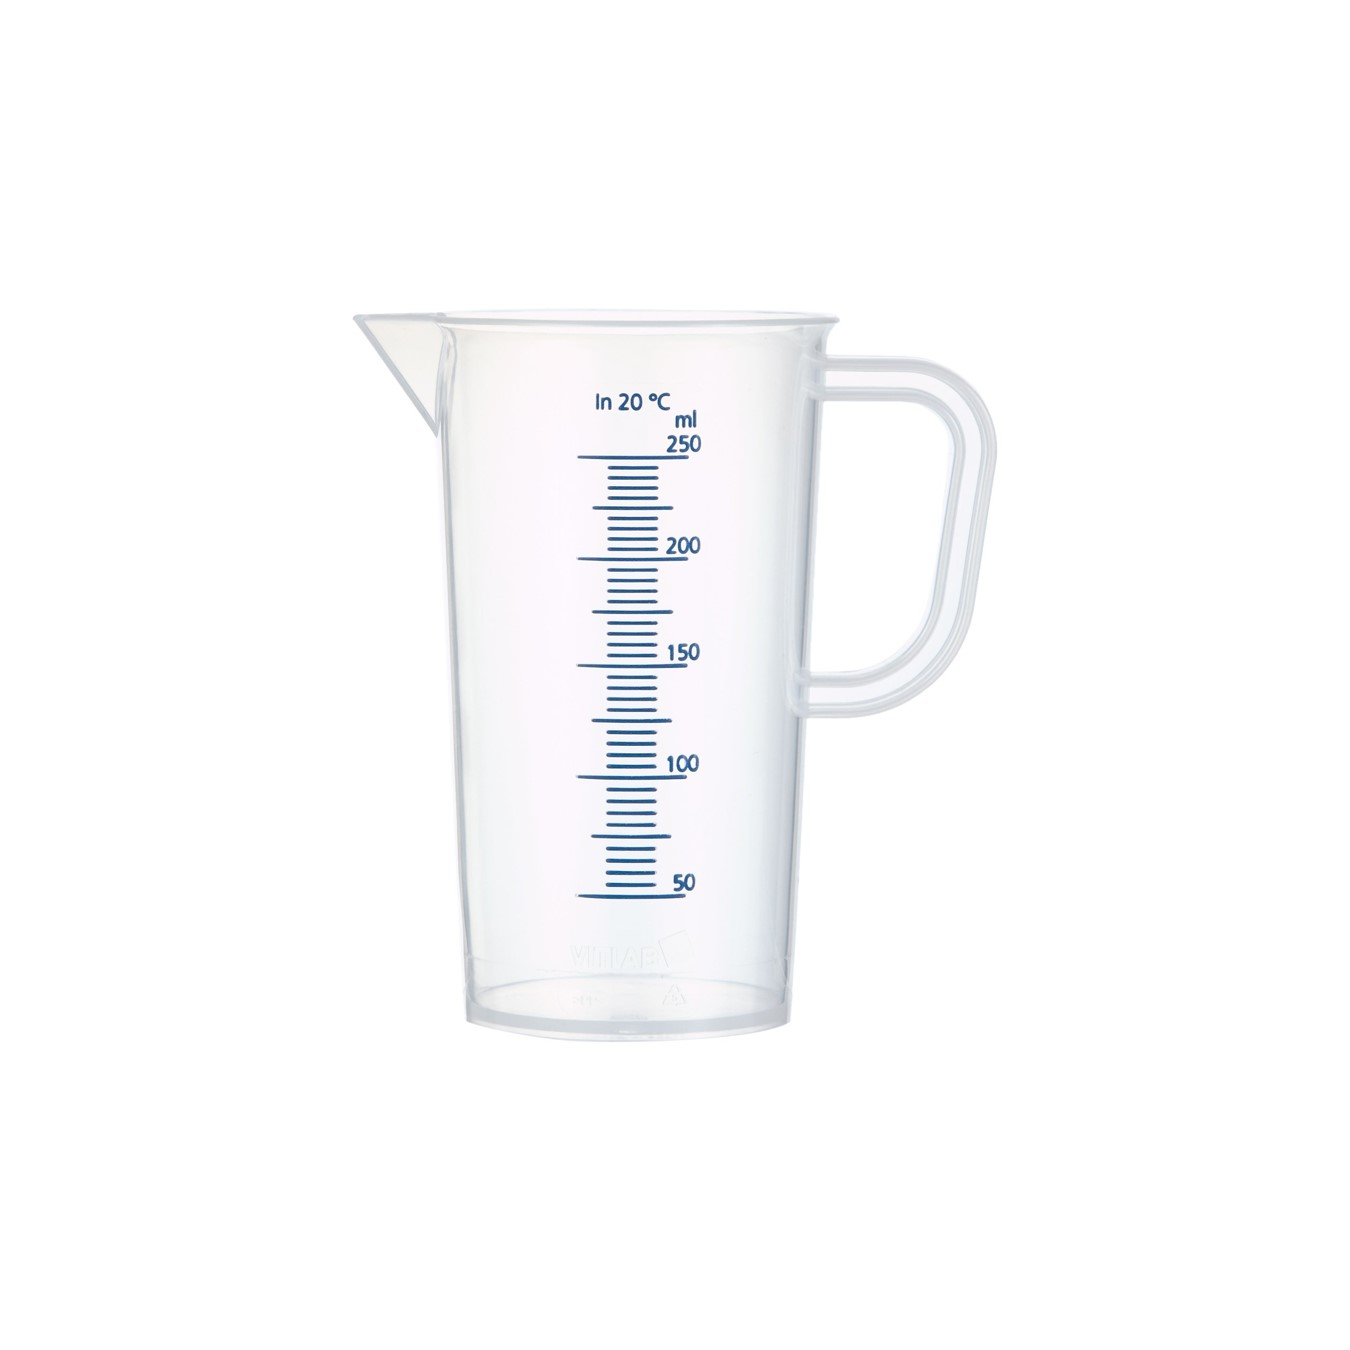 High Acid Resistant Blue Graduation PP Measuring Jug from